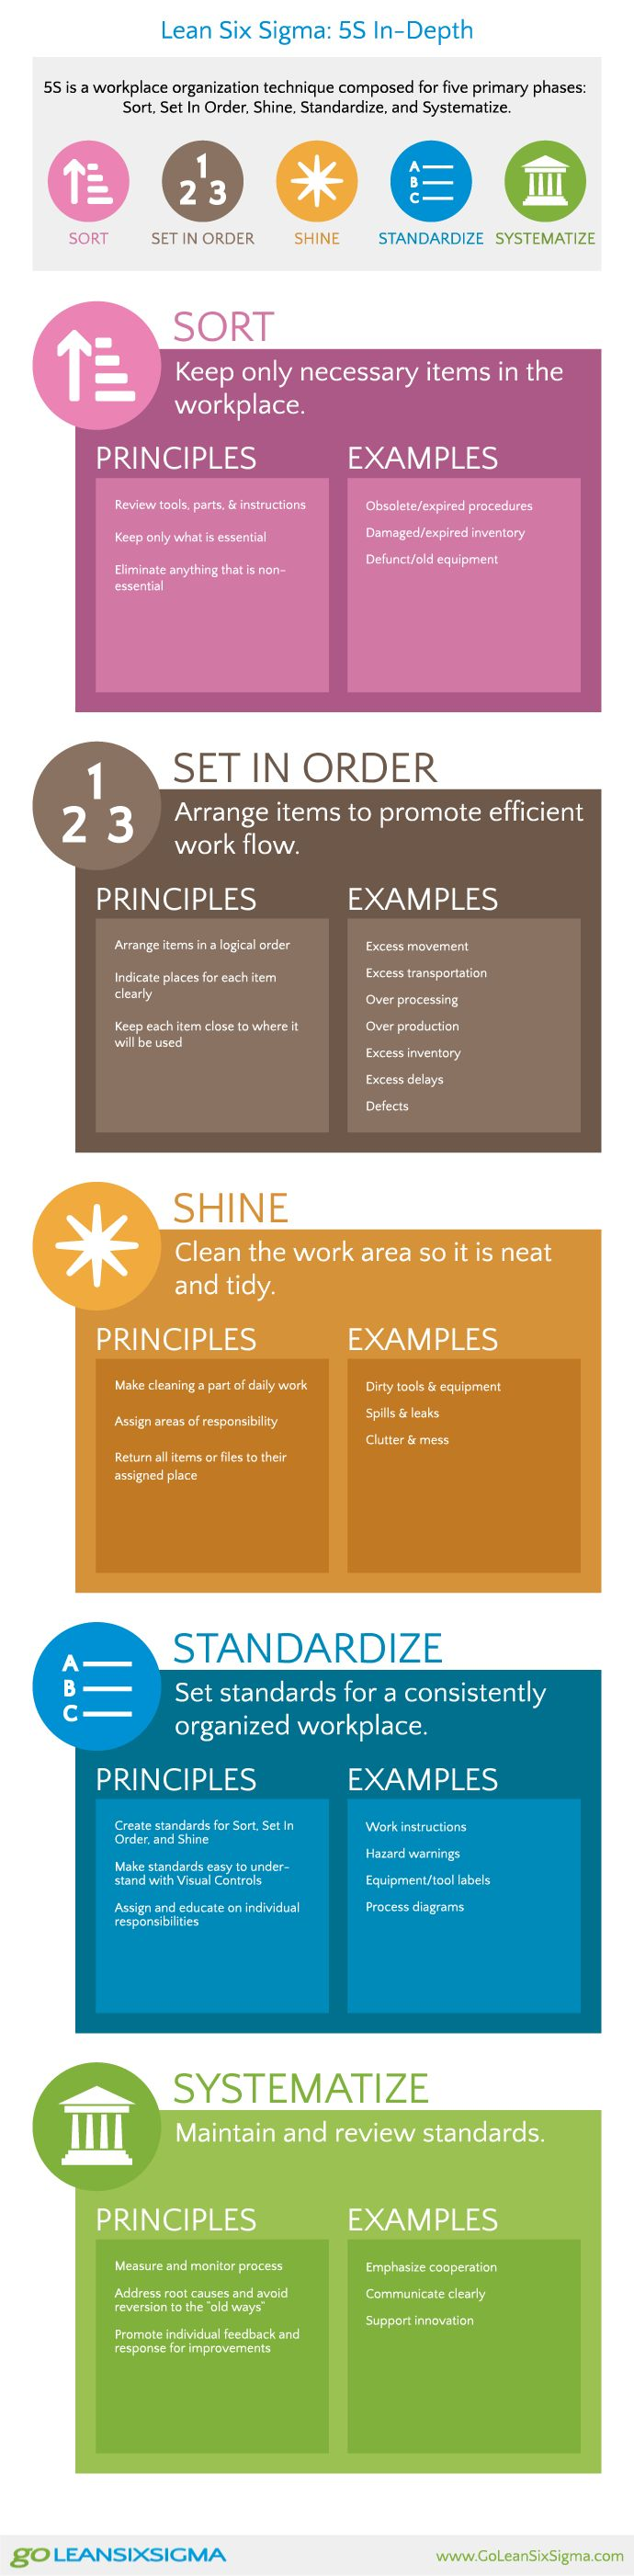 5s poster design - Lean Six Sigma 5s Infographic